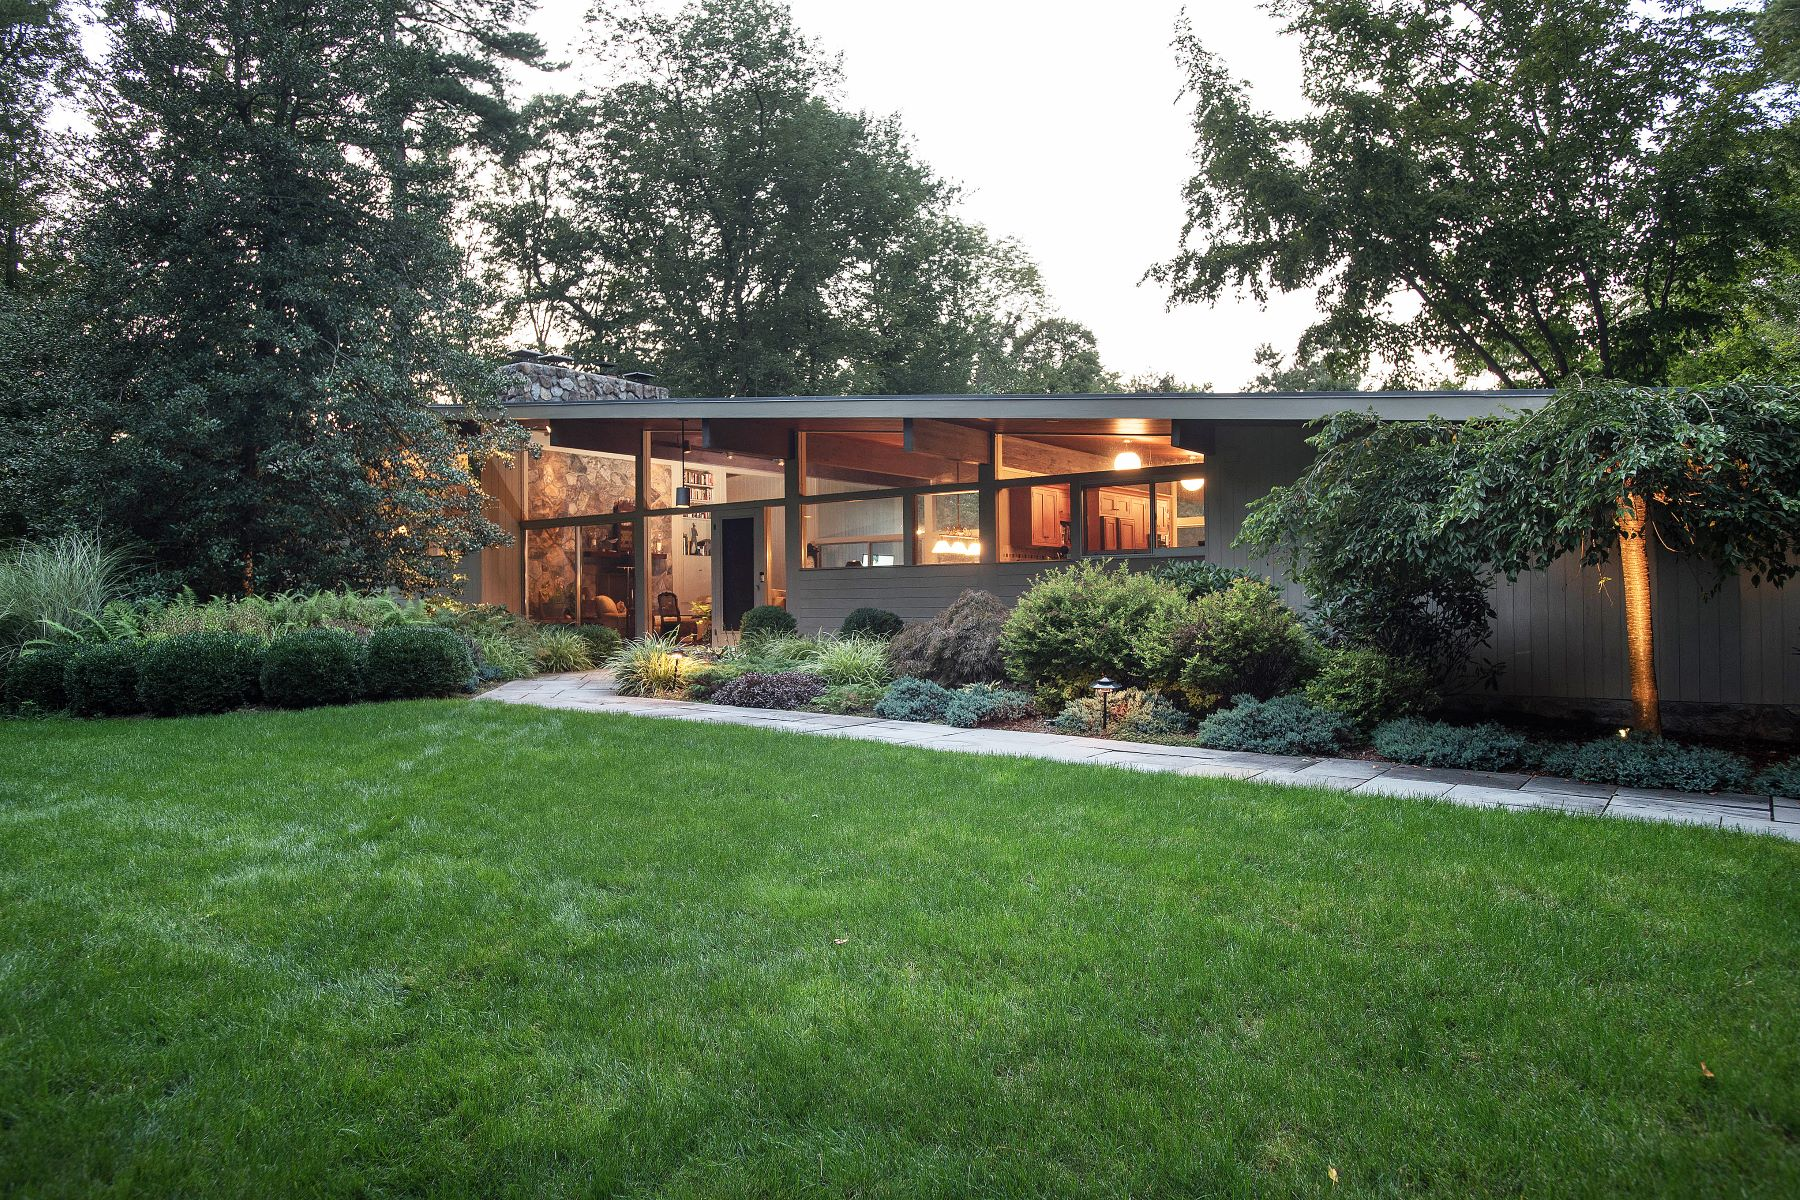 House for Sale at James Evans Mid-Century Modern 126 Chichester Road New Canaan, Connecticut 06840 United States